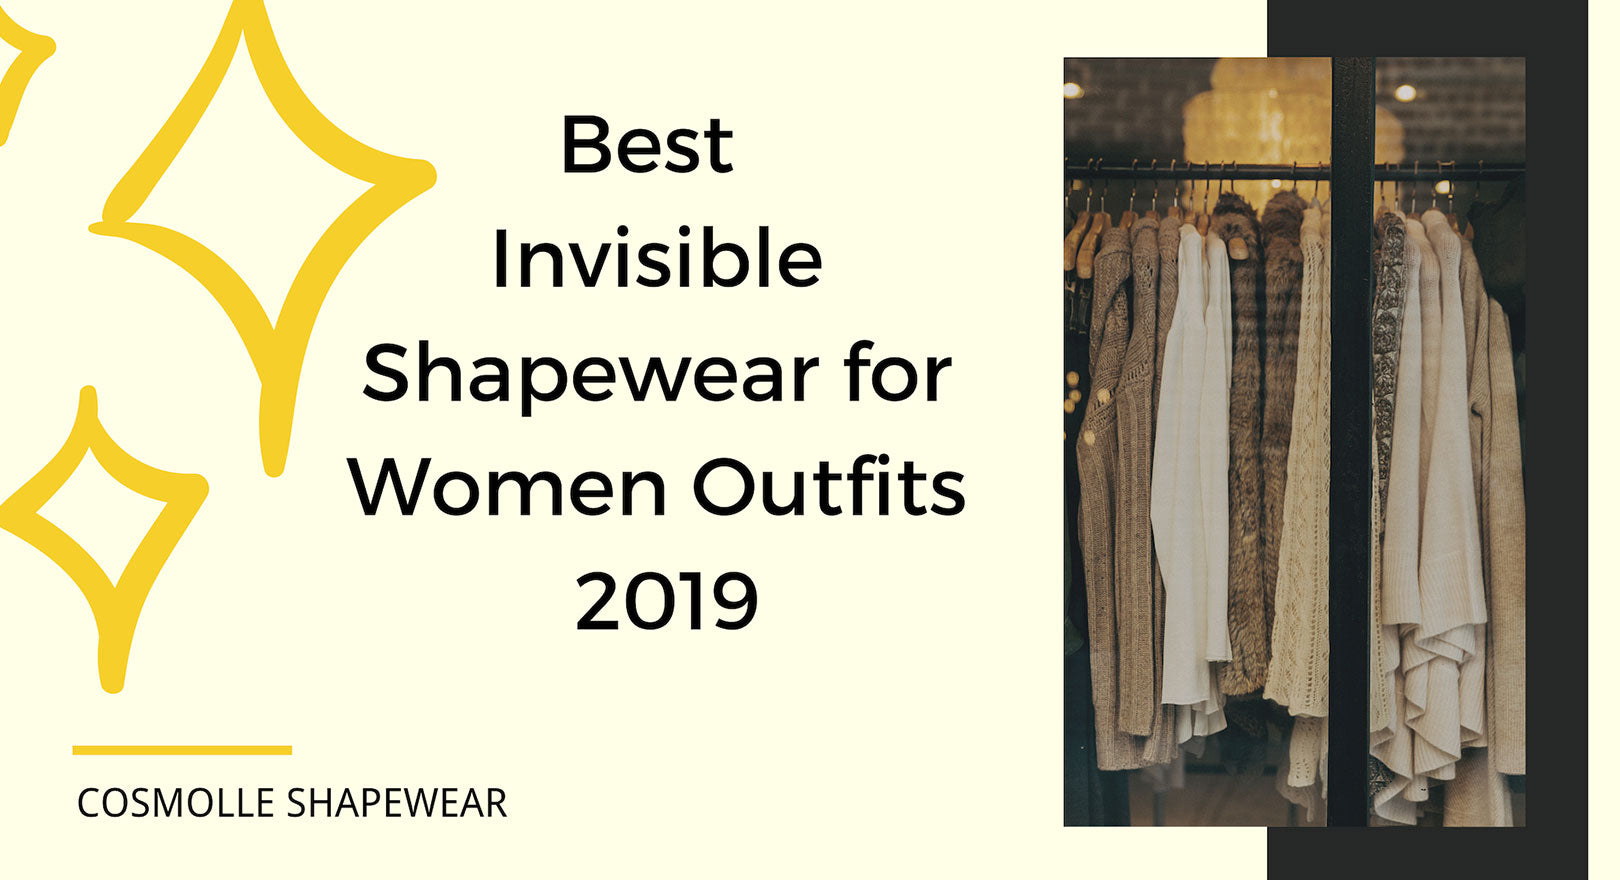 Best Invisible Shapewear for Women Outfits 2019